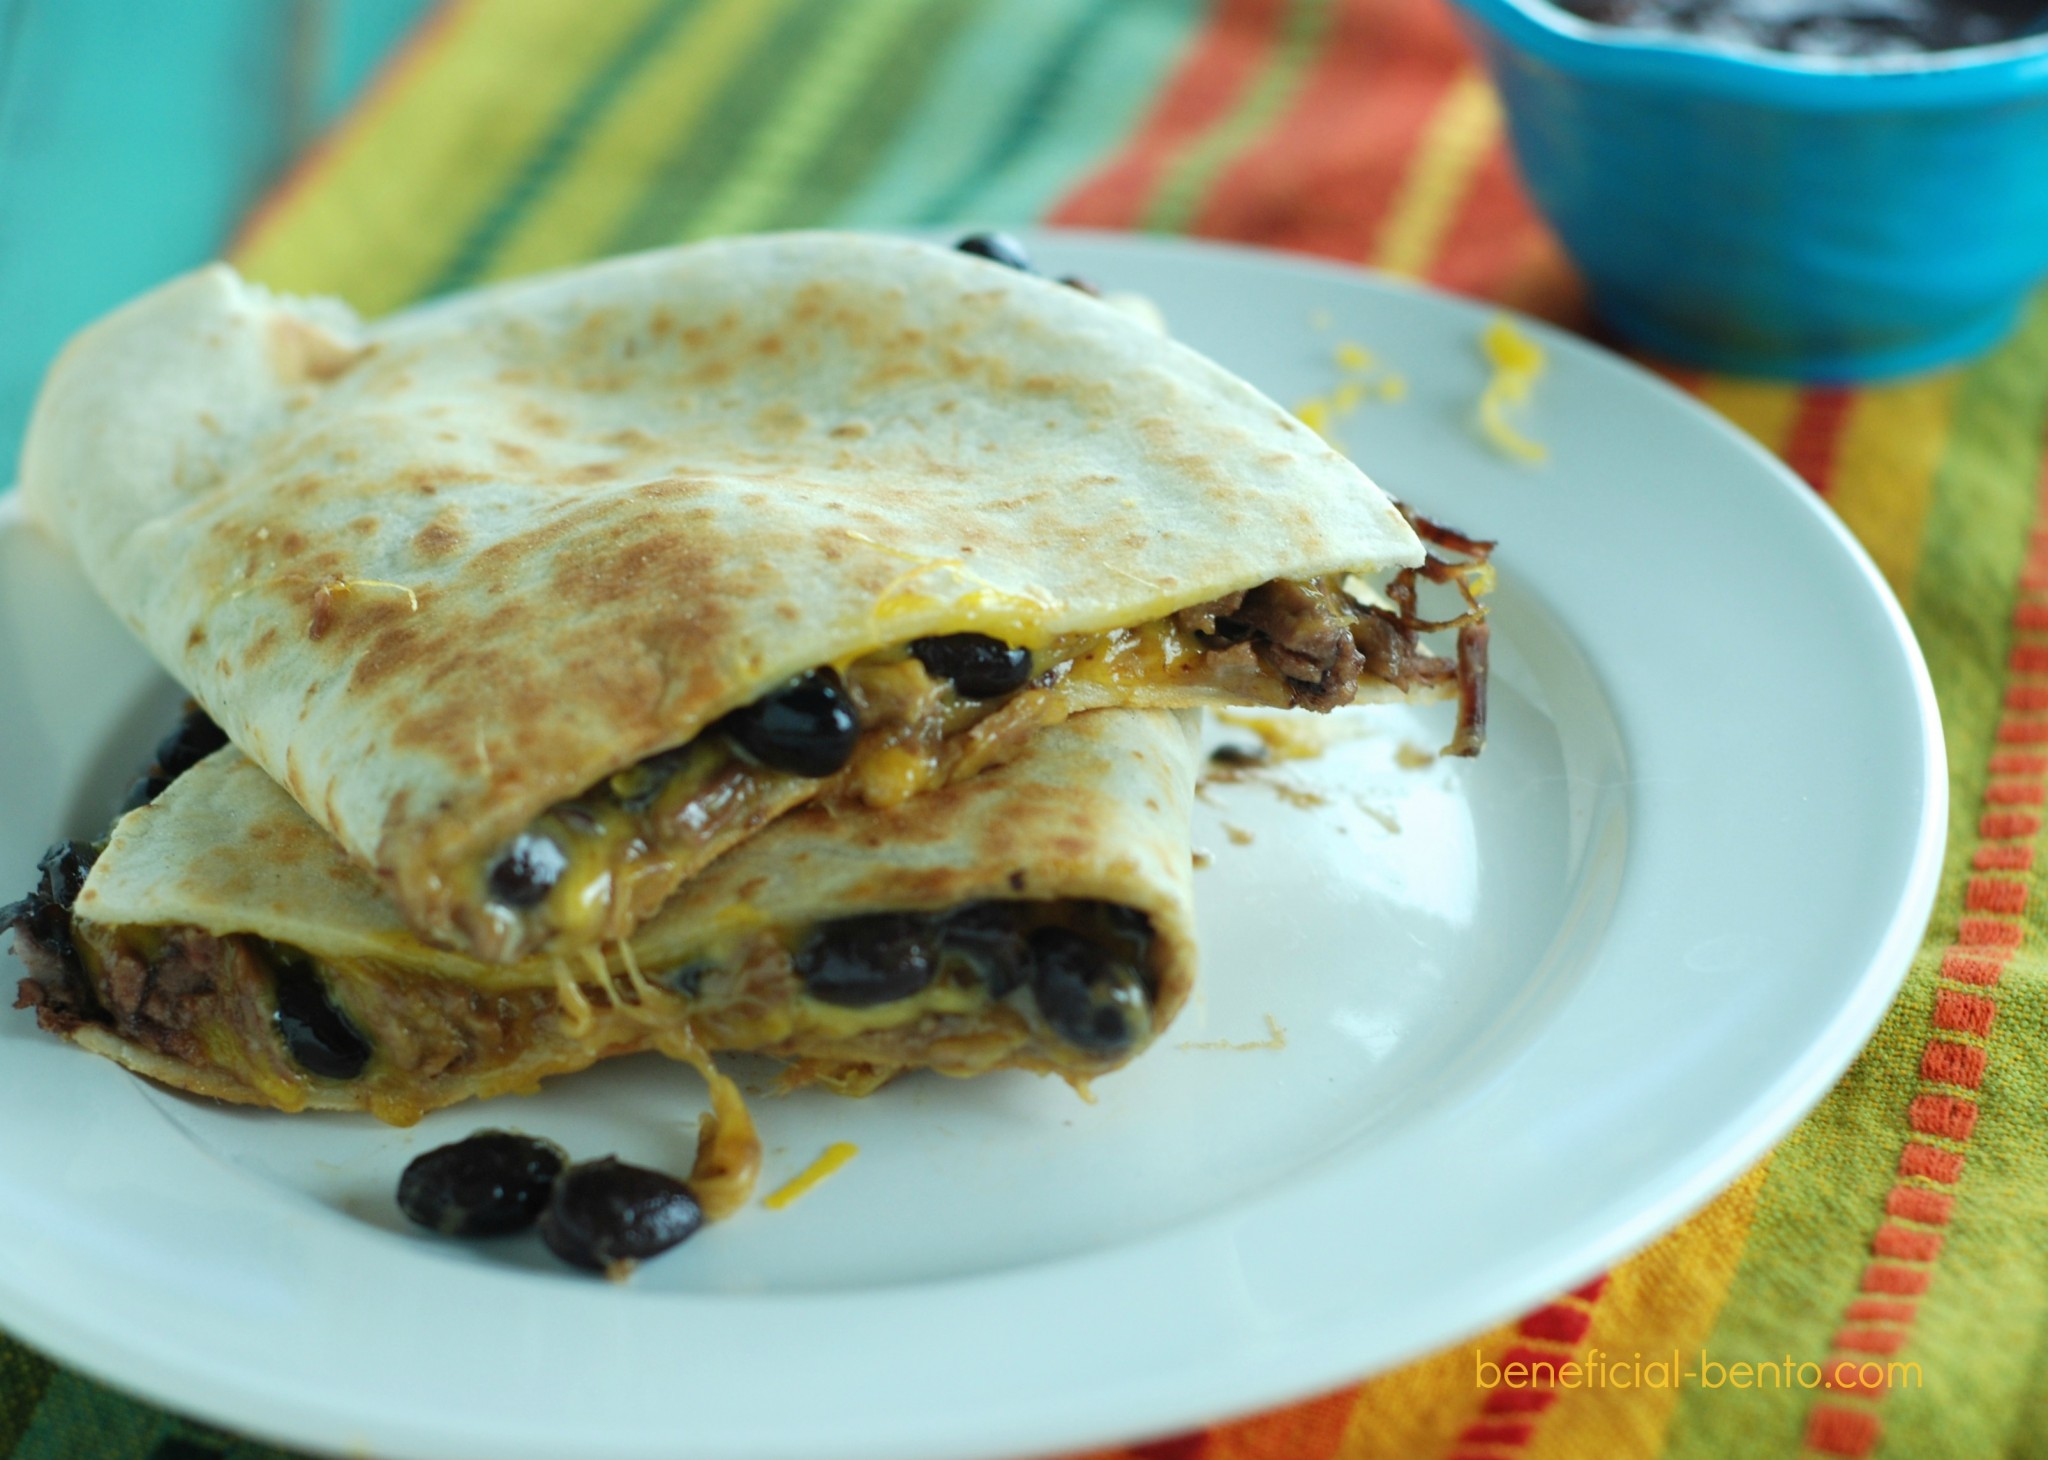 Beef and Bean quesadillas with barbecue salsa dipping sauce - you won't believe how incredible this is!